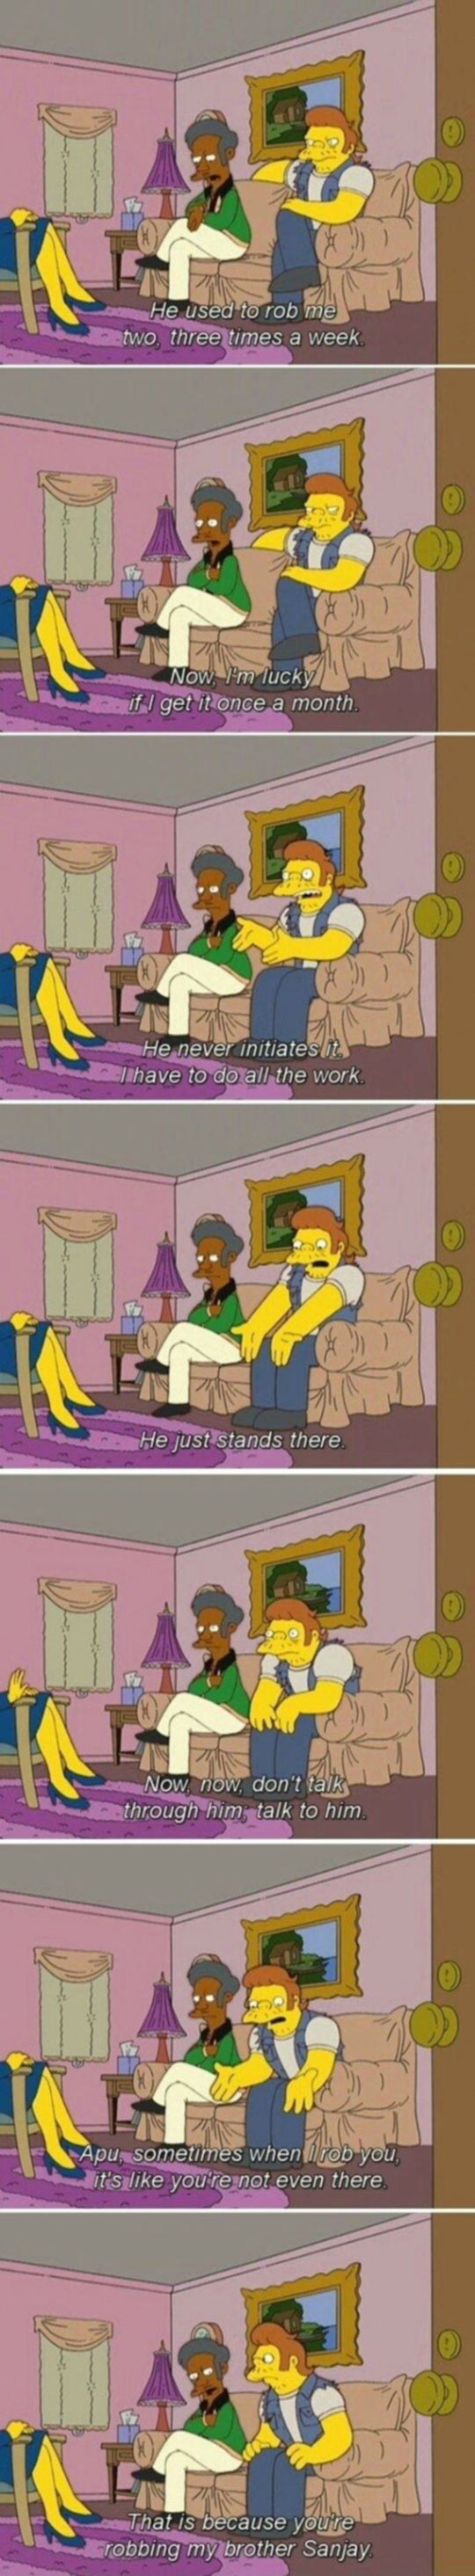 funny-Simpsons-relationships-Apu-Snake-therapy